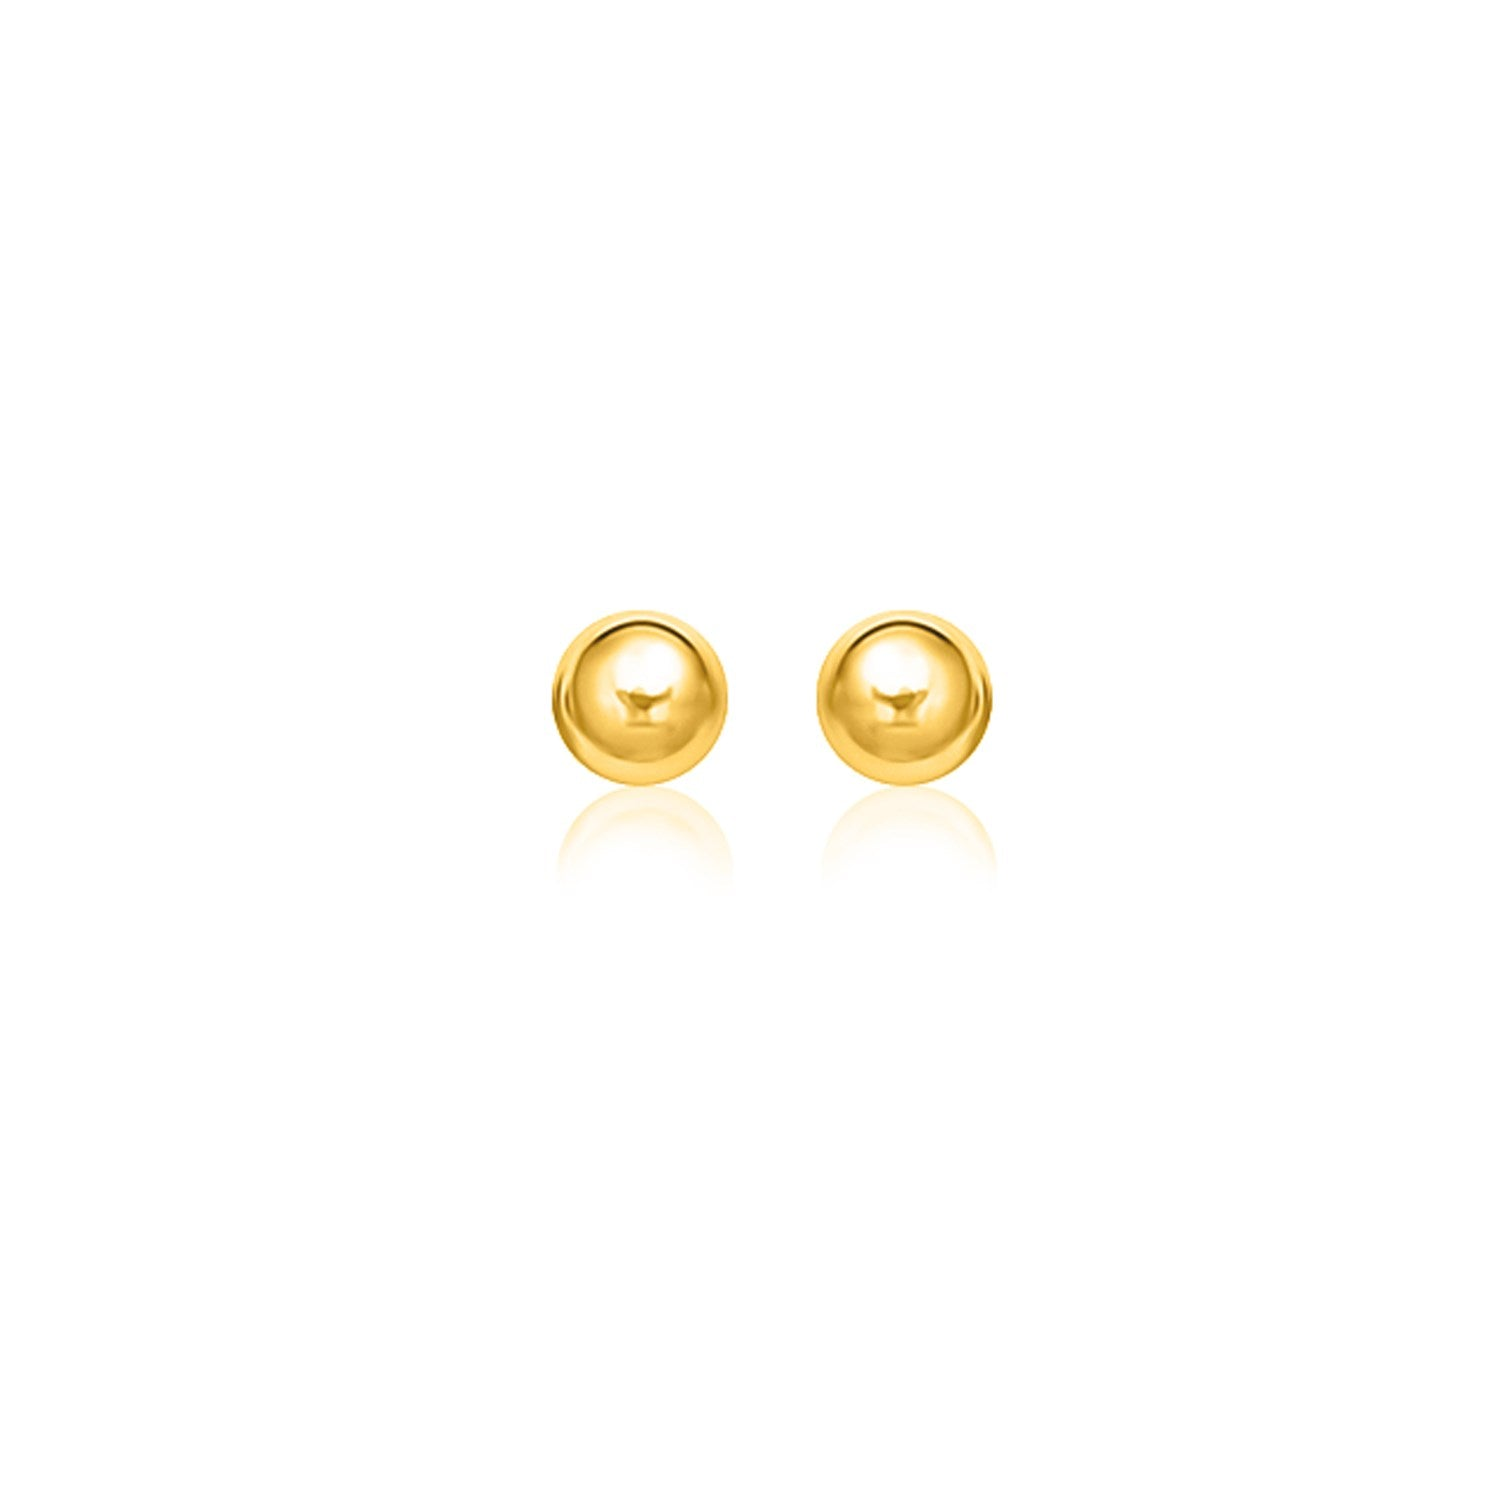 14K Yellow Gold Spherical Stud Earrings (8.0 mm)